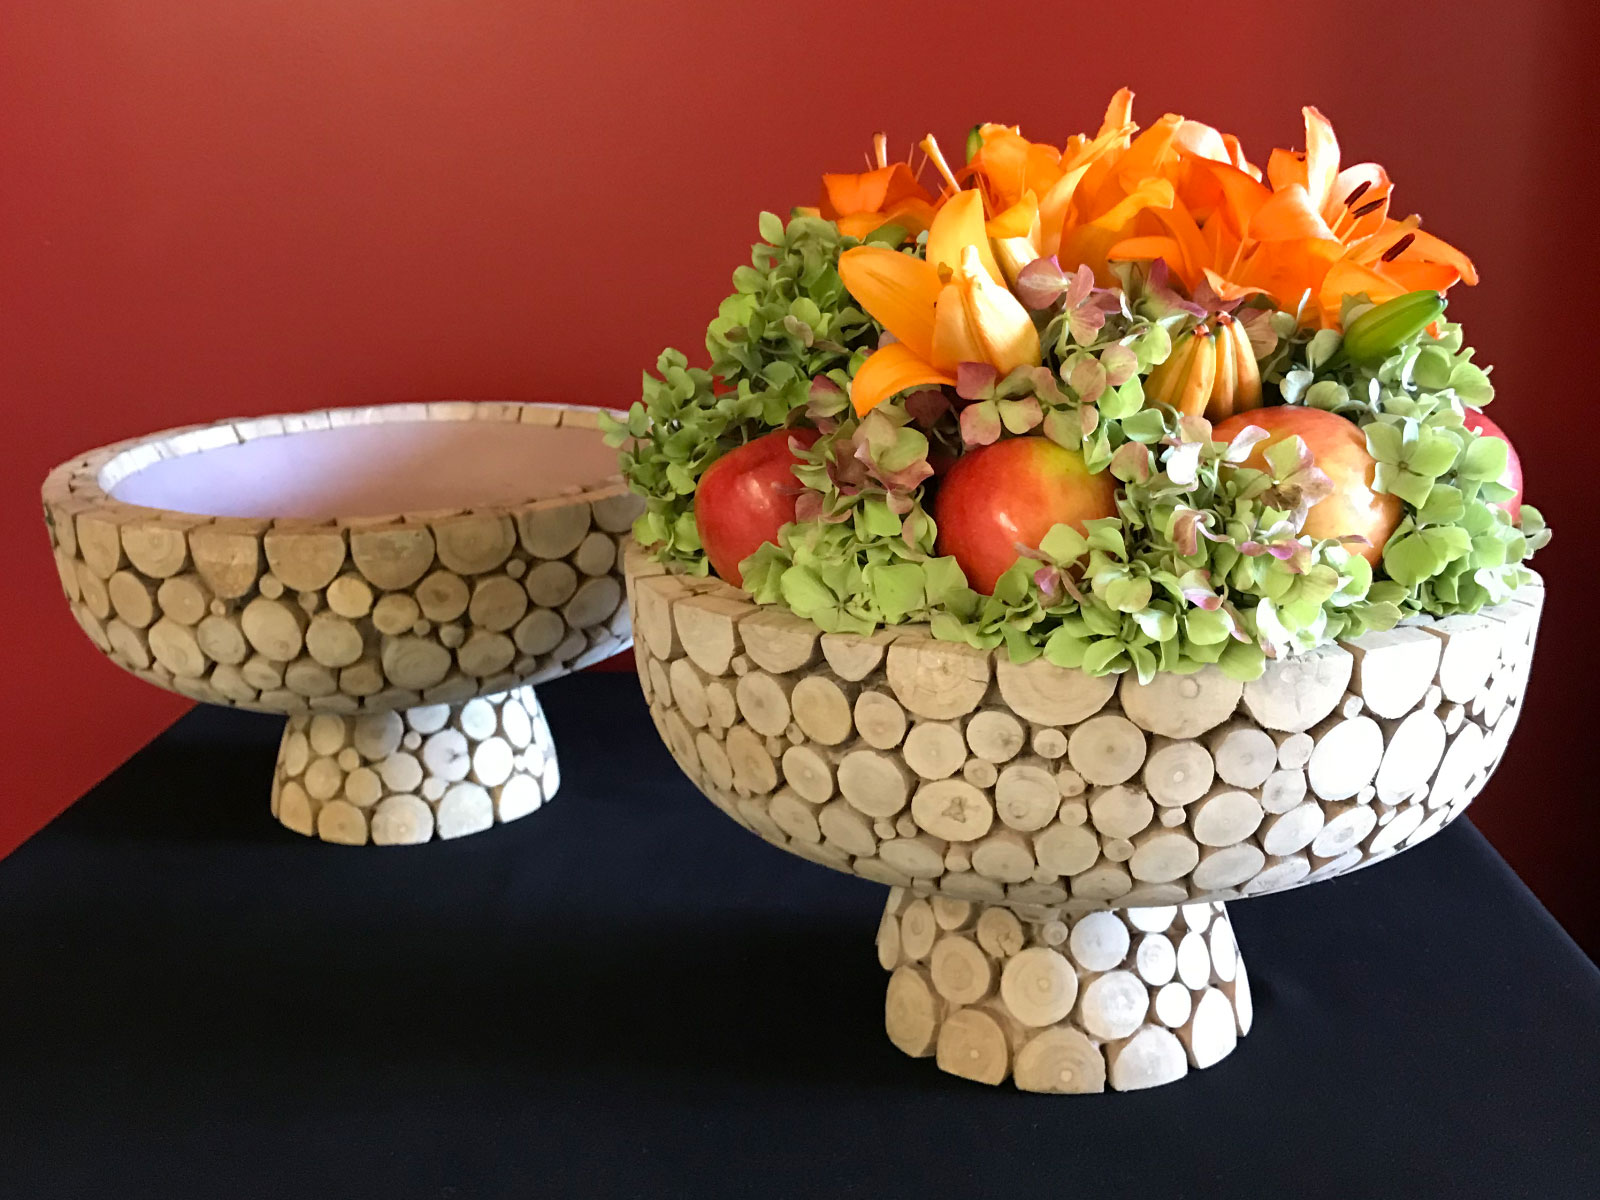 Apples, orange flowers and leaves set in a stone cradle